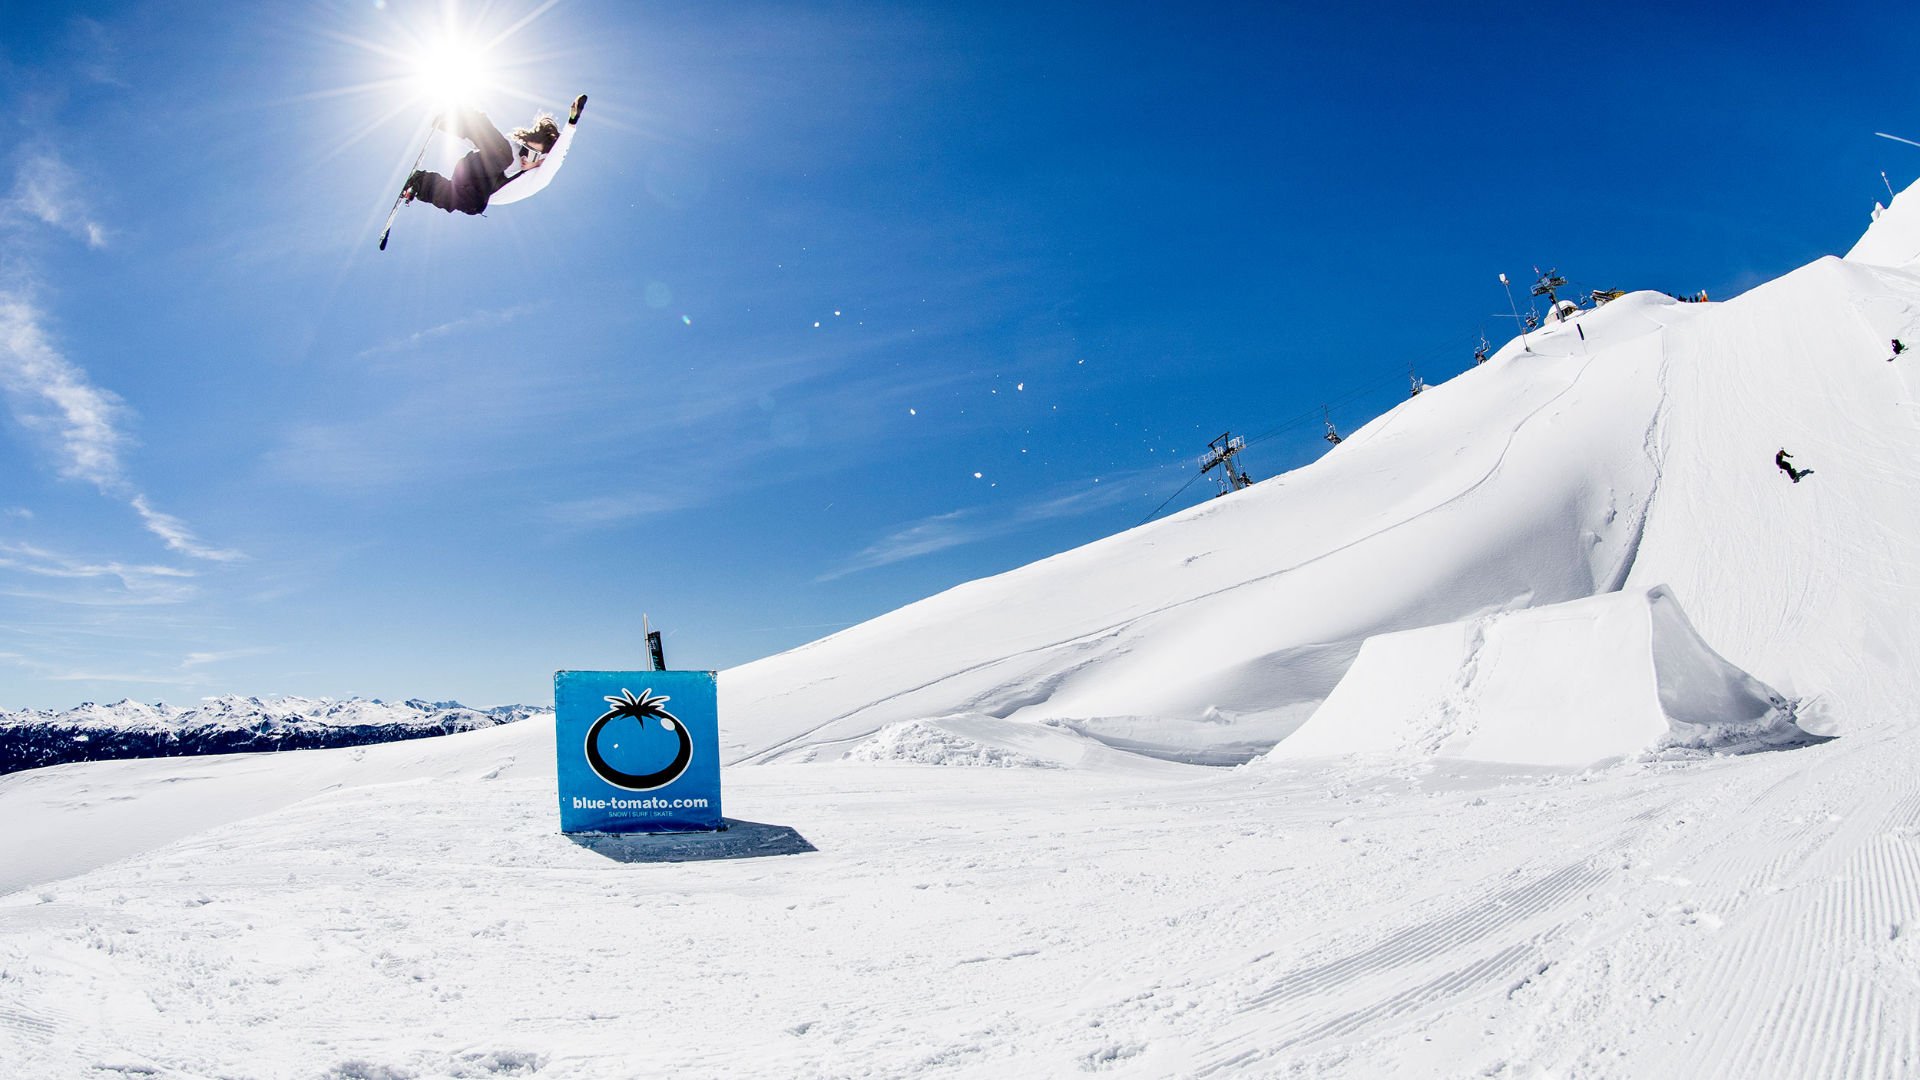 Patrick Steiner jumping a kicker in the Snowpark Skylinepark in very sunny conditions